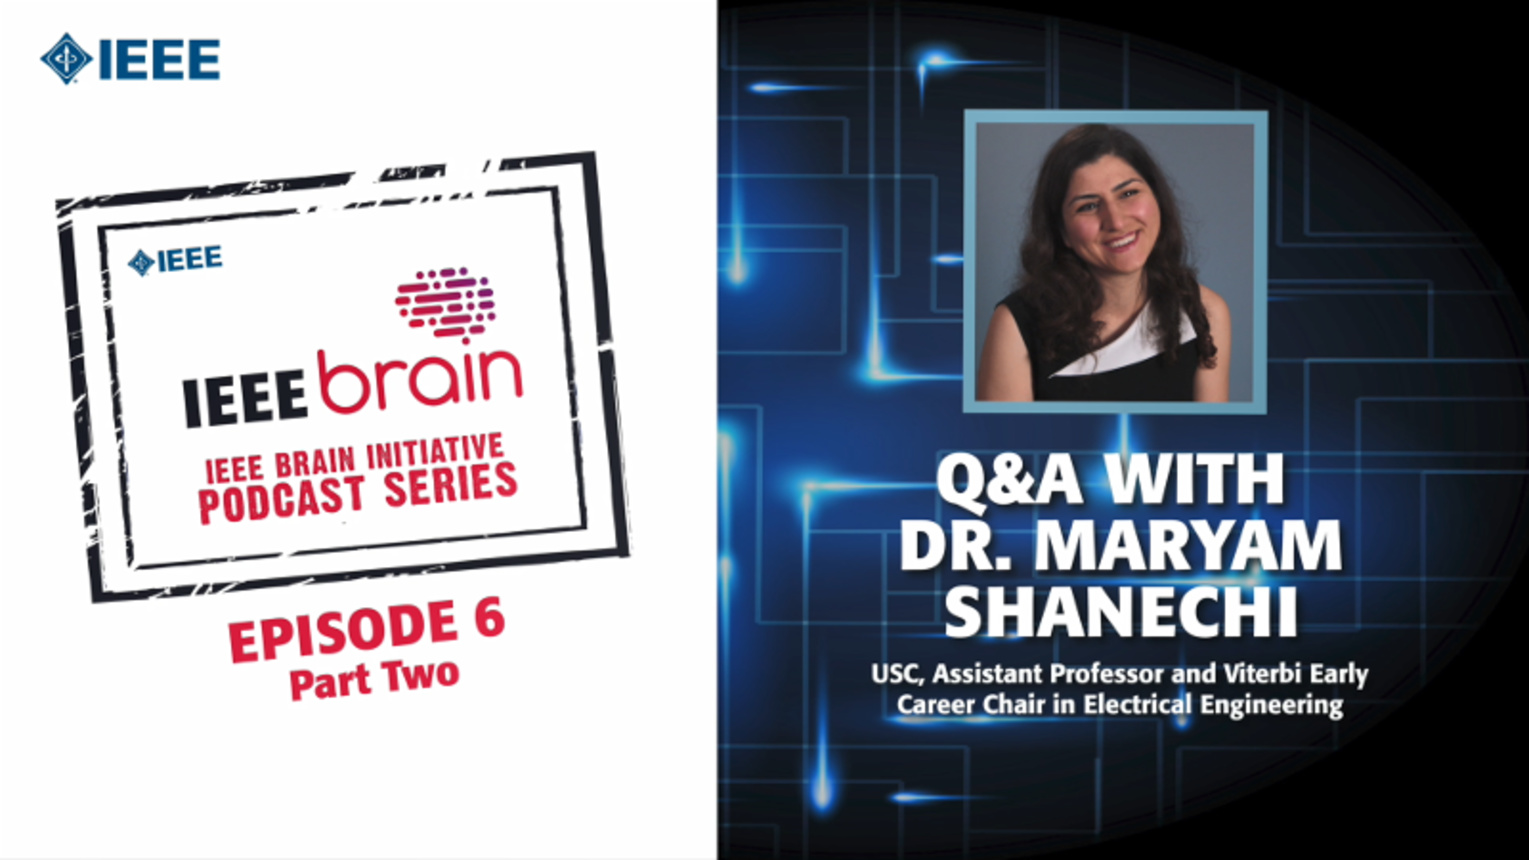 Q&A with Dr. Maryam Shanechi: IEEE Brain Podcast, Episode 6 Part 2